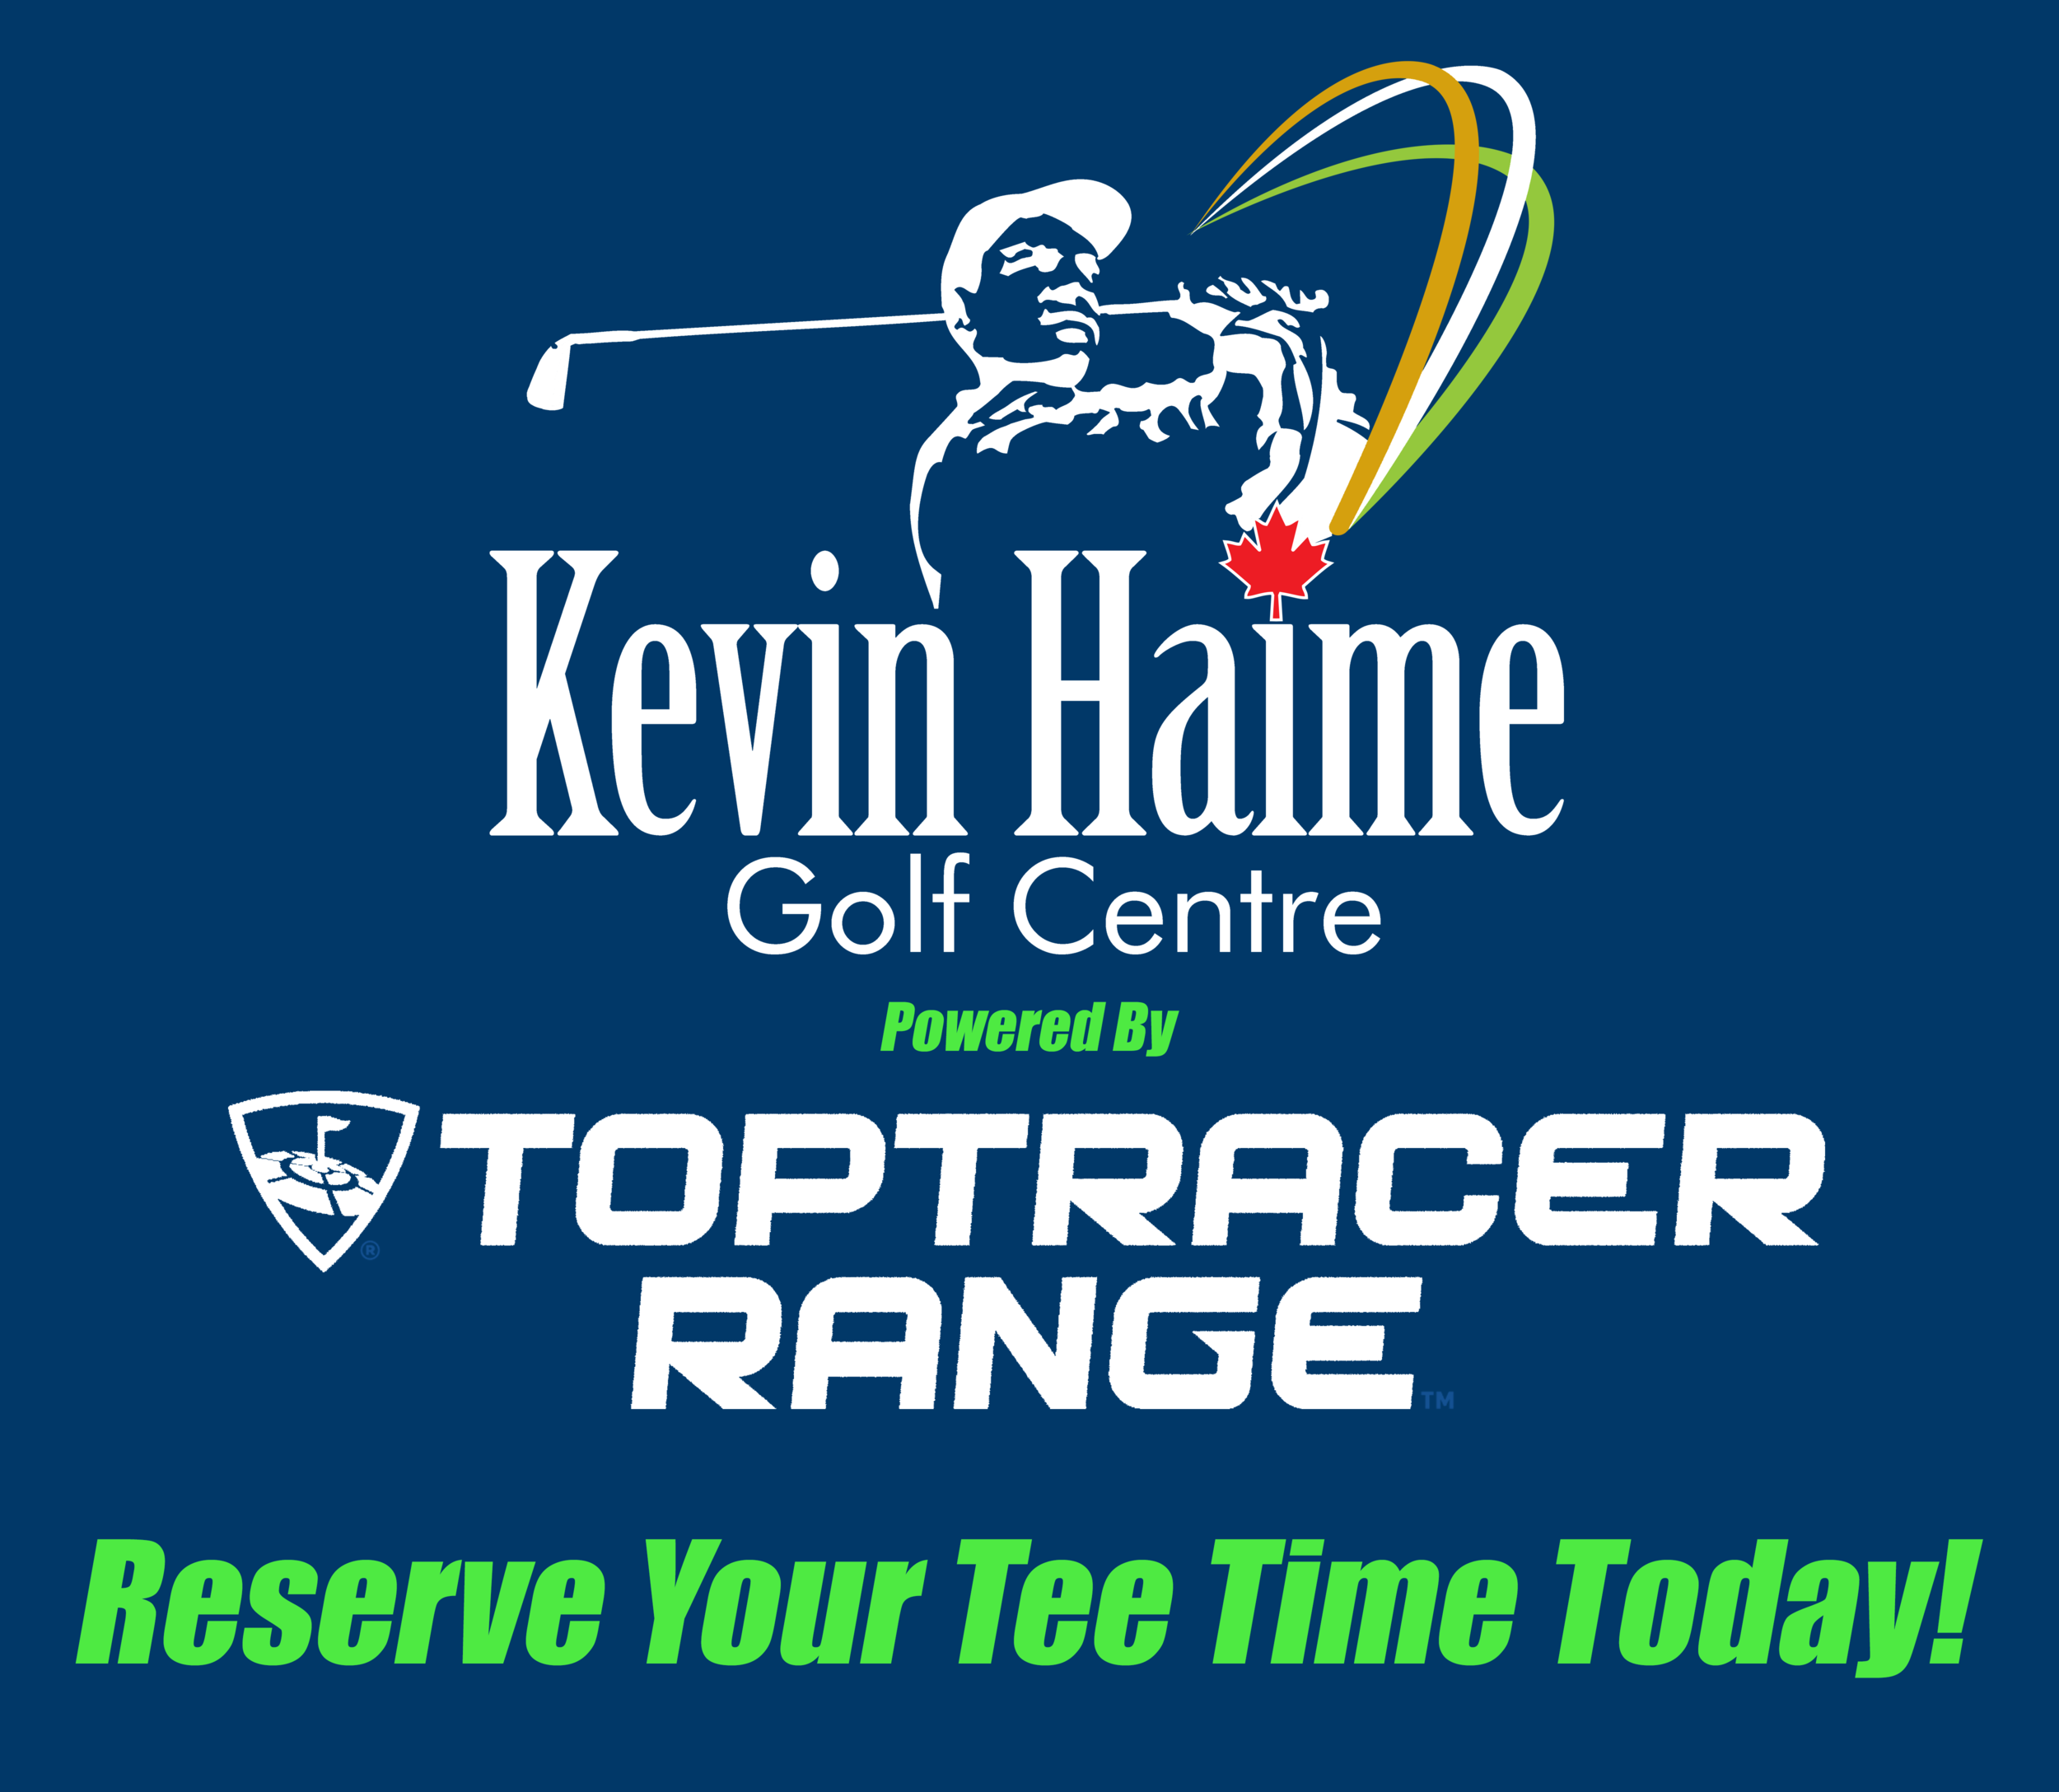 Reserve your tee time today for golf tracking top tracer range